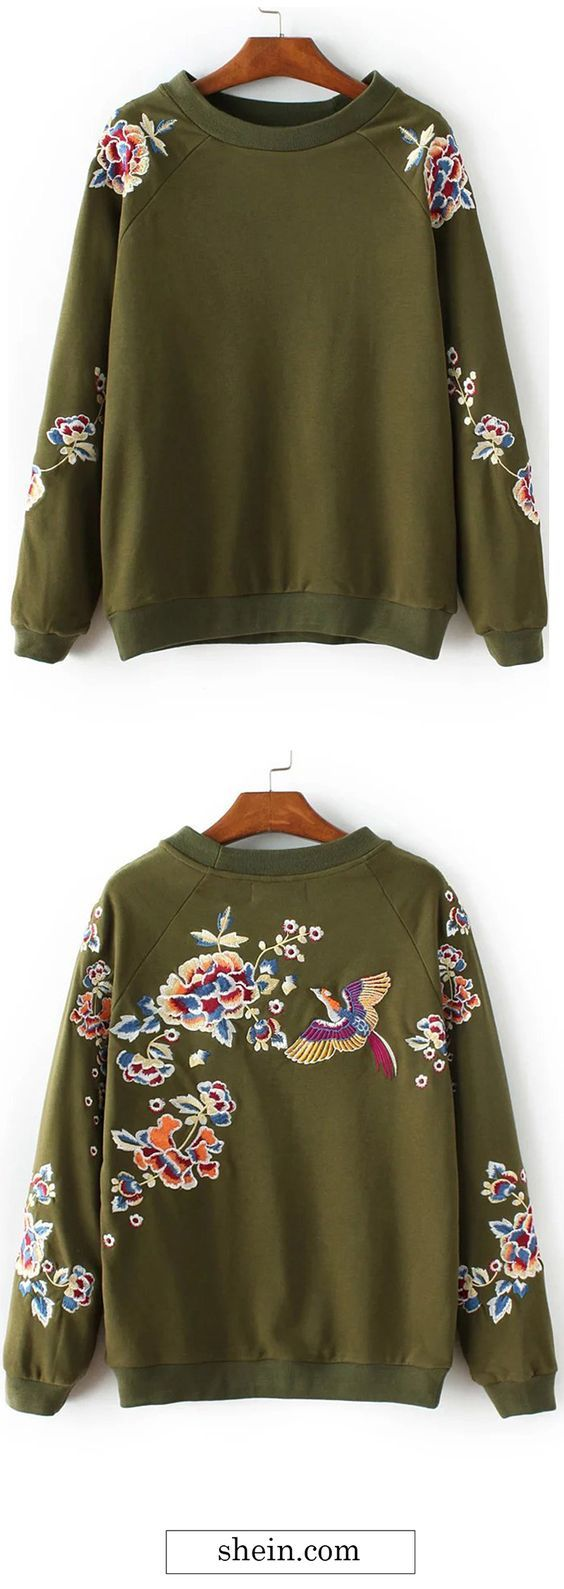 Army Green Floral Embroidery Crew Neck Sweatshirt | Spotlights ...